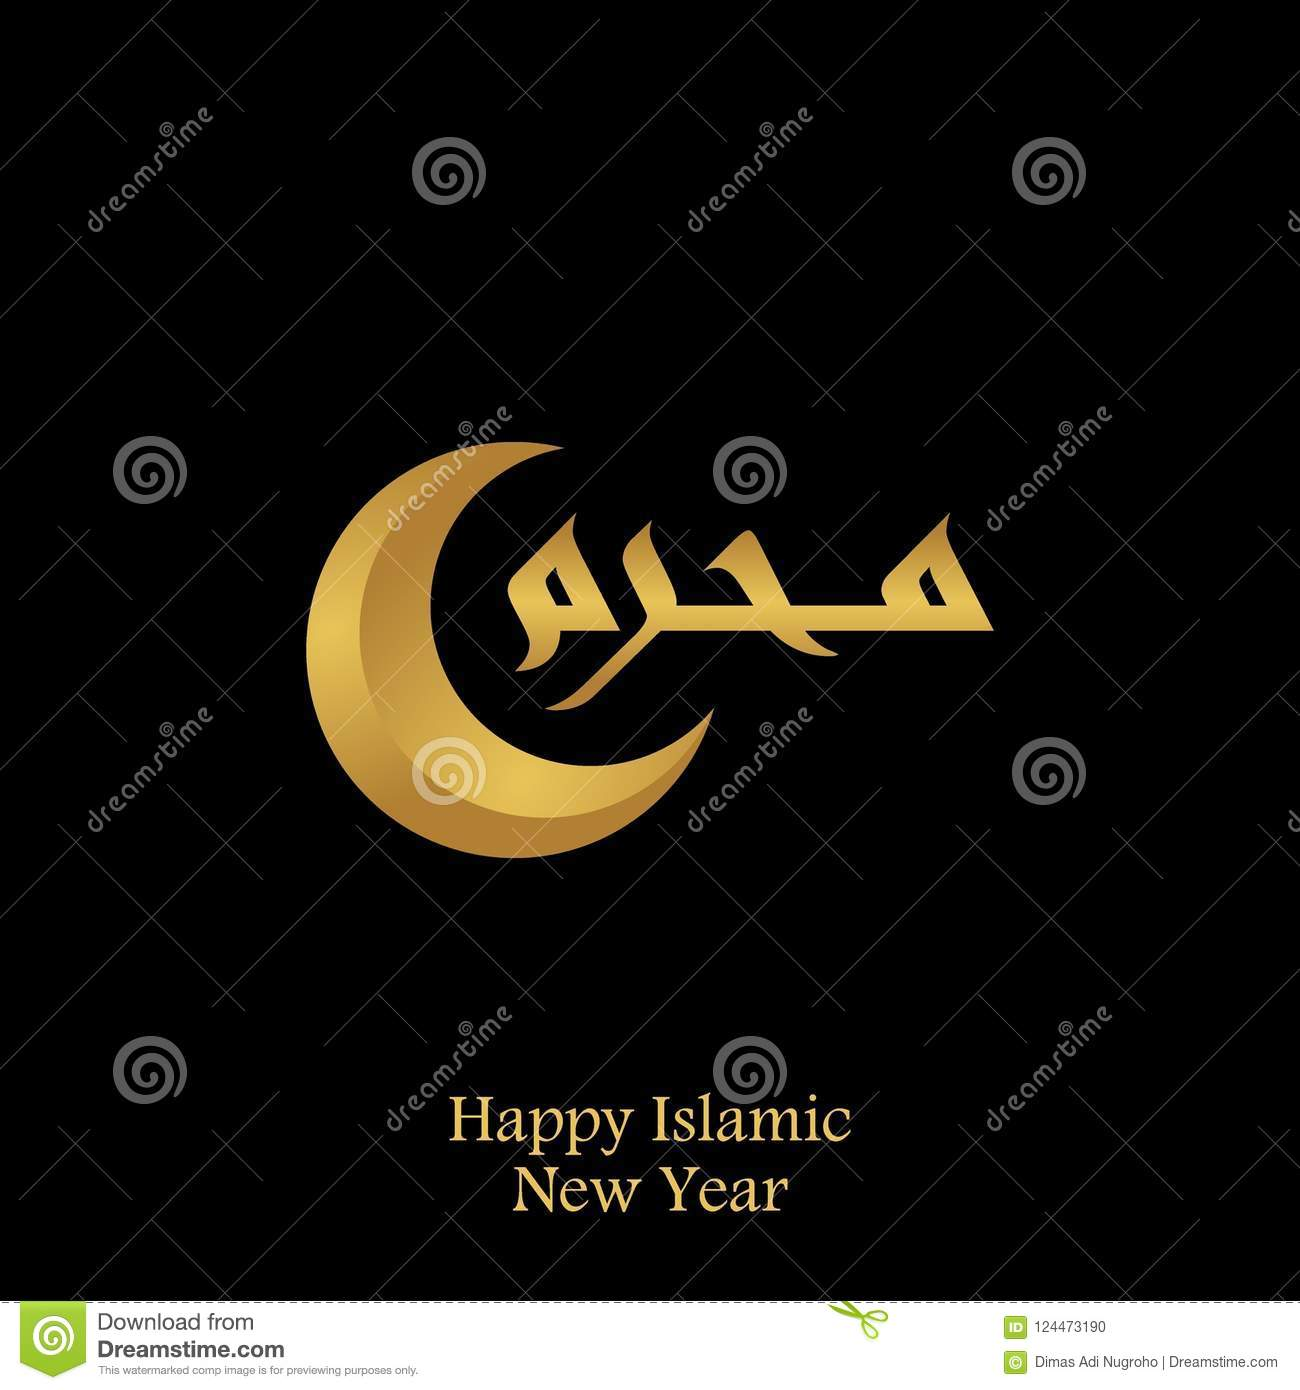 Happy Islamic Muharram New Year Greeting Illustration Vector Stock